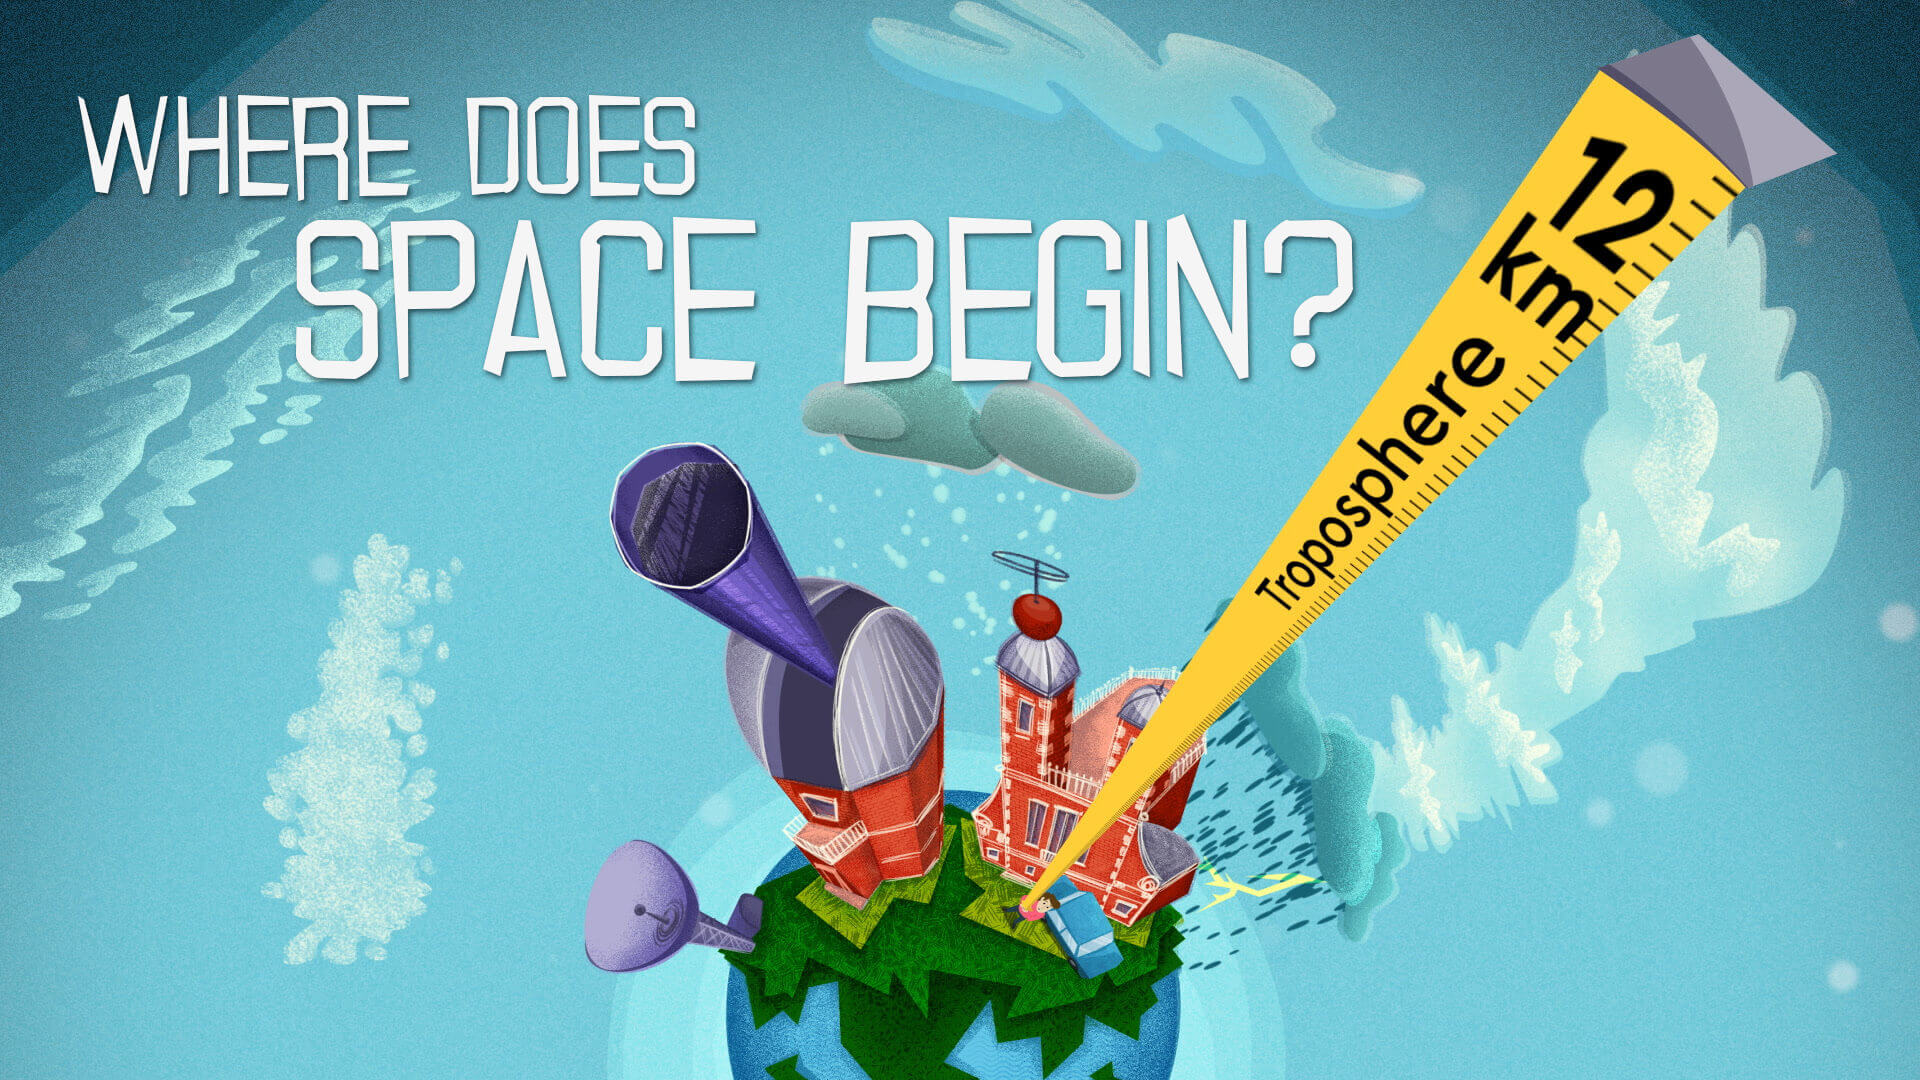 Educational animation for children for Royal Observatory Greenwich - Where does Space Begin